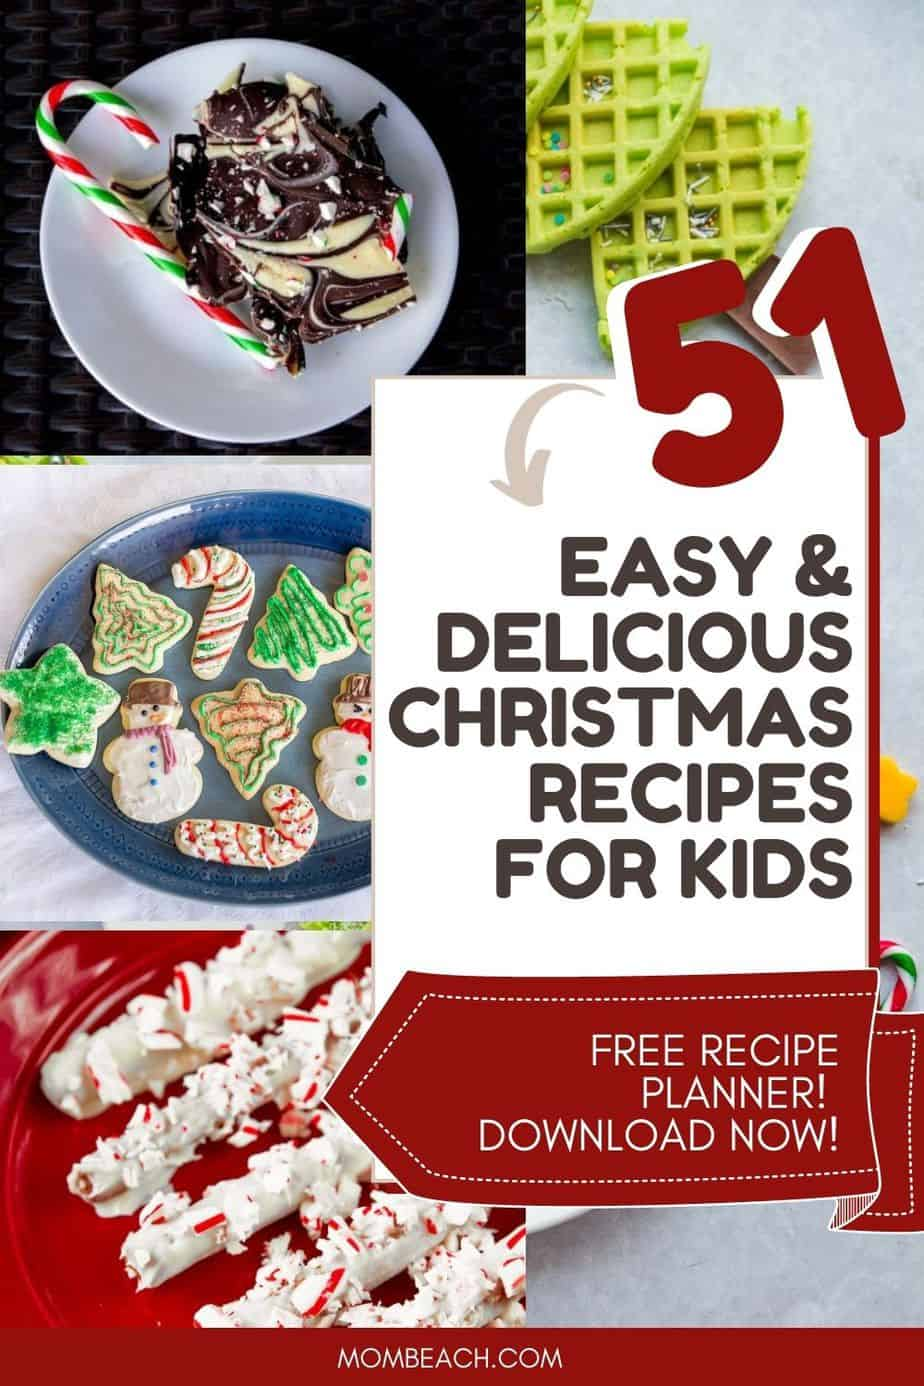 You won't believe how much fun kids will have when helping you to make these festive Christmas holiday recipes. They are simple and easy to make. Some of them are healthy and easy no bake or cook too. They are quick recipes ideas for families to make at home. There are dinners, breakfasts, desserts, and appetizers.